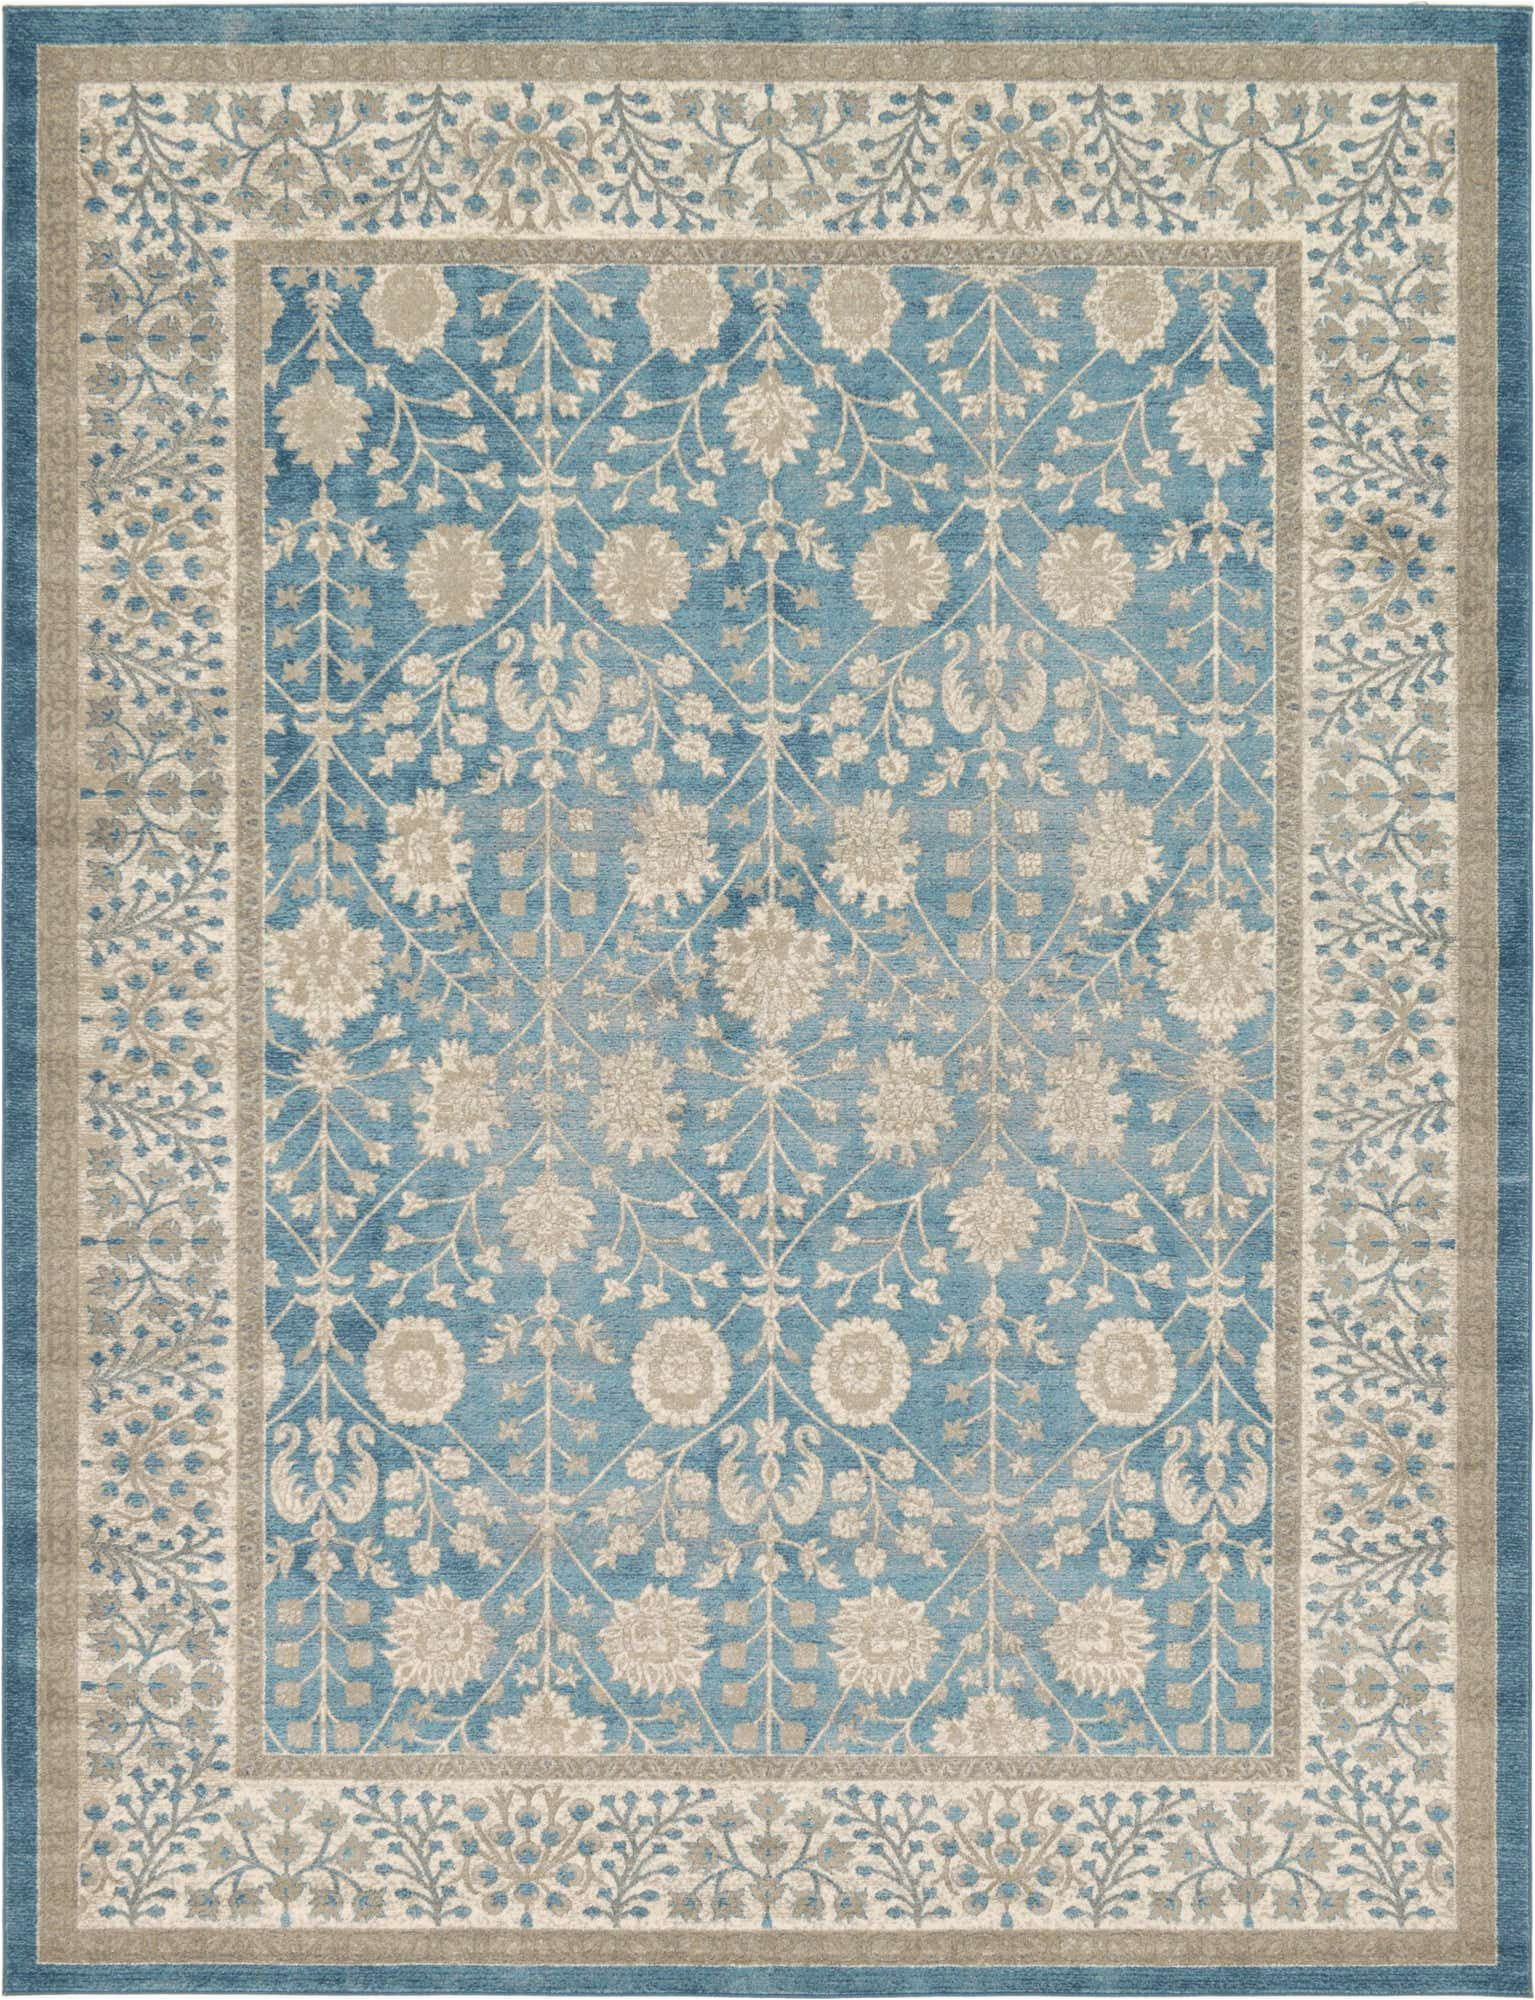 Light Blue Rug 9x12 Light Blue 9 X 12 Vienna Rug Affiliate Blue Light